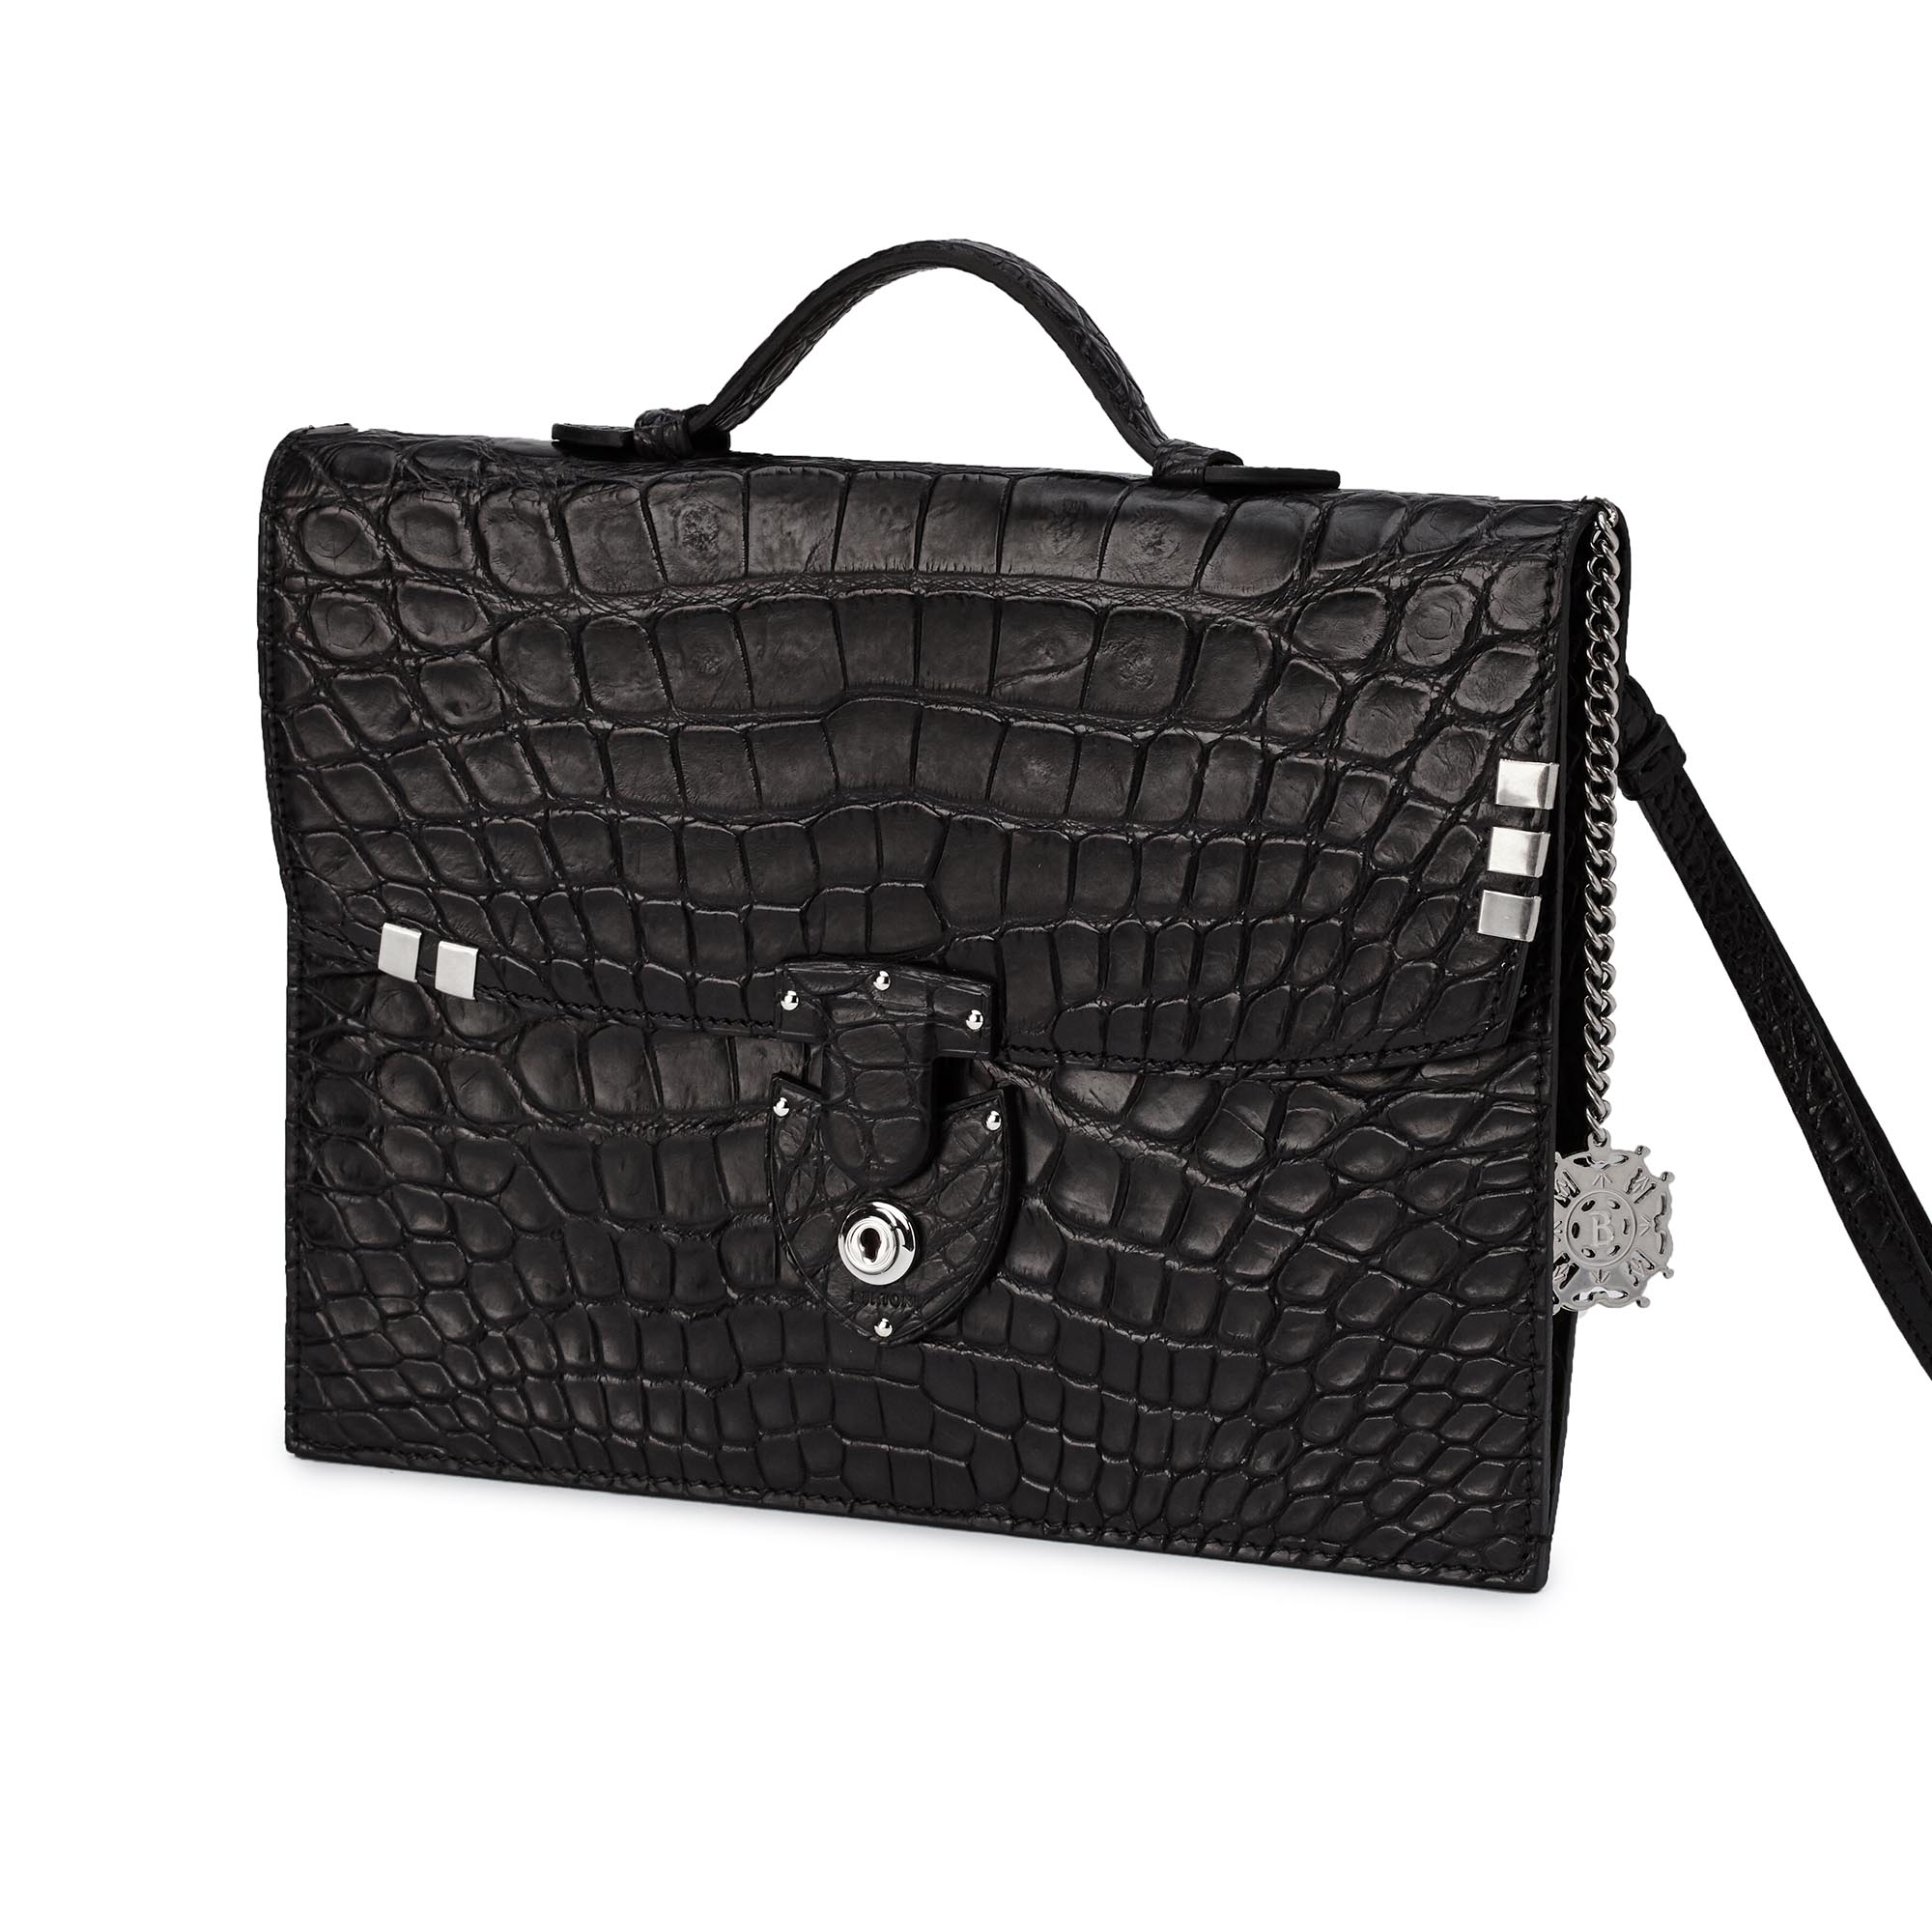 Signature-Bike-black-alligator-bag-Bertoni-1949_01